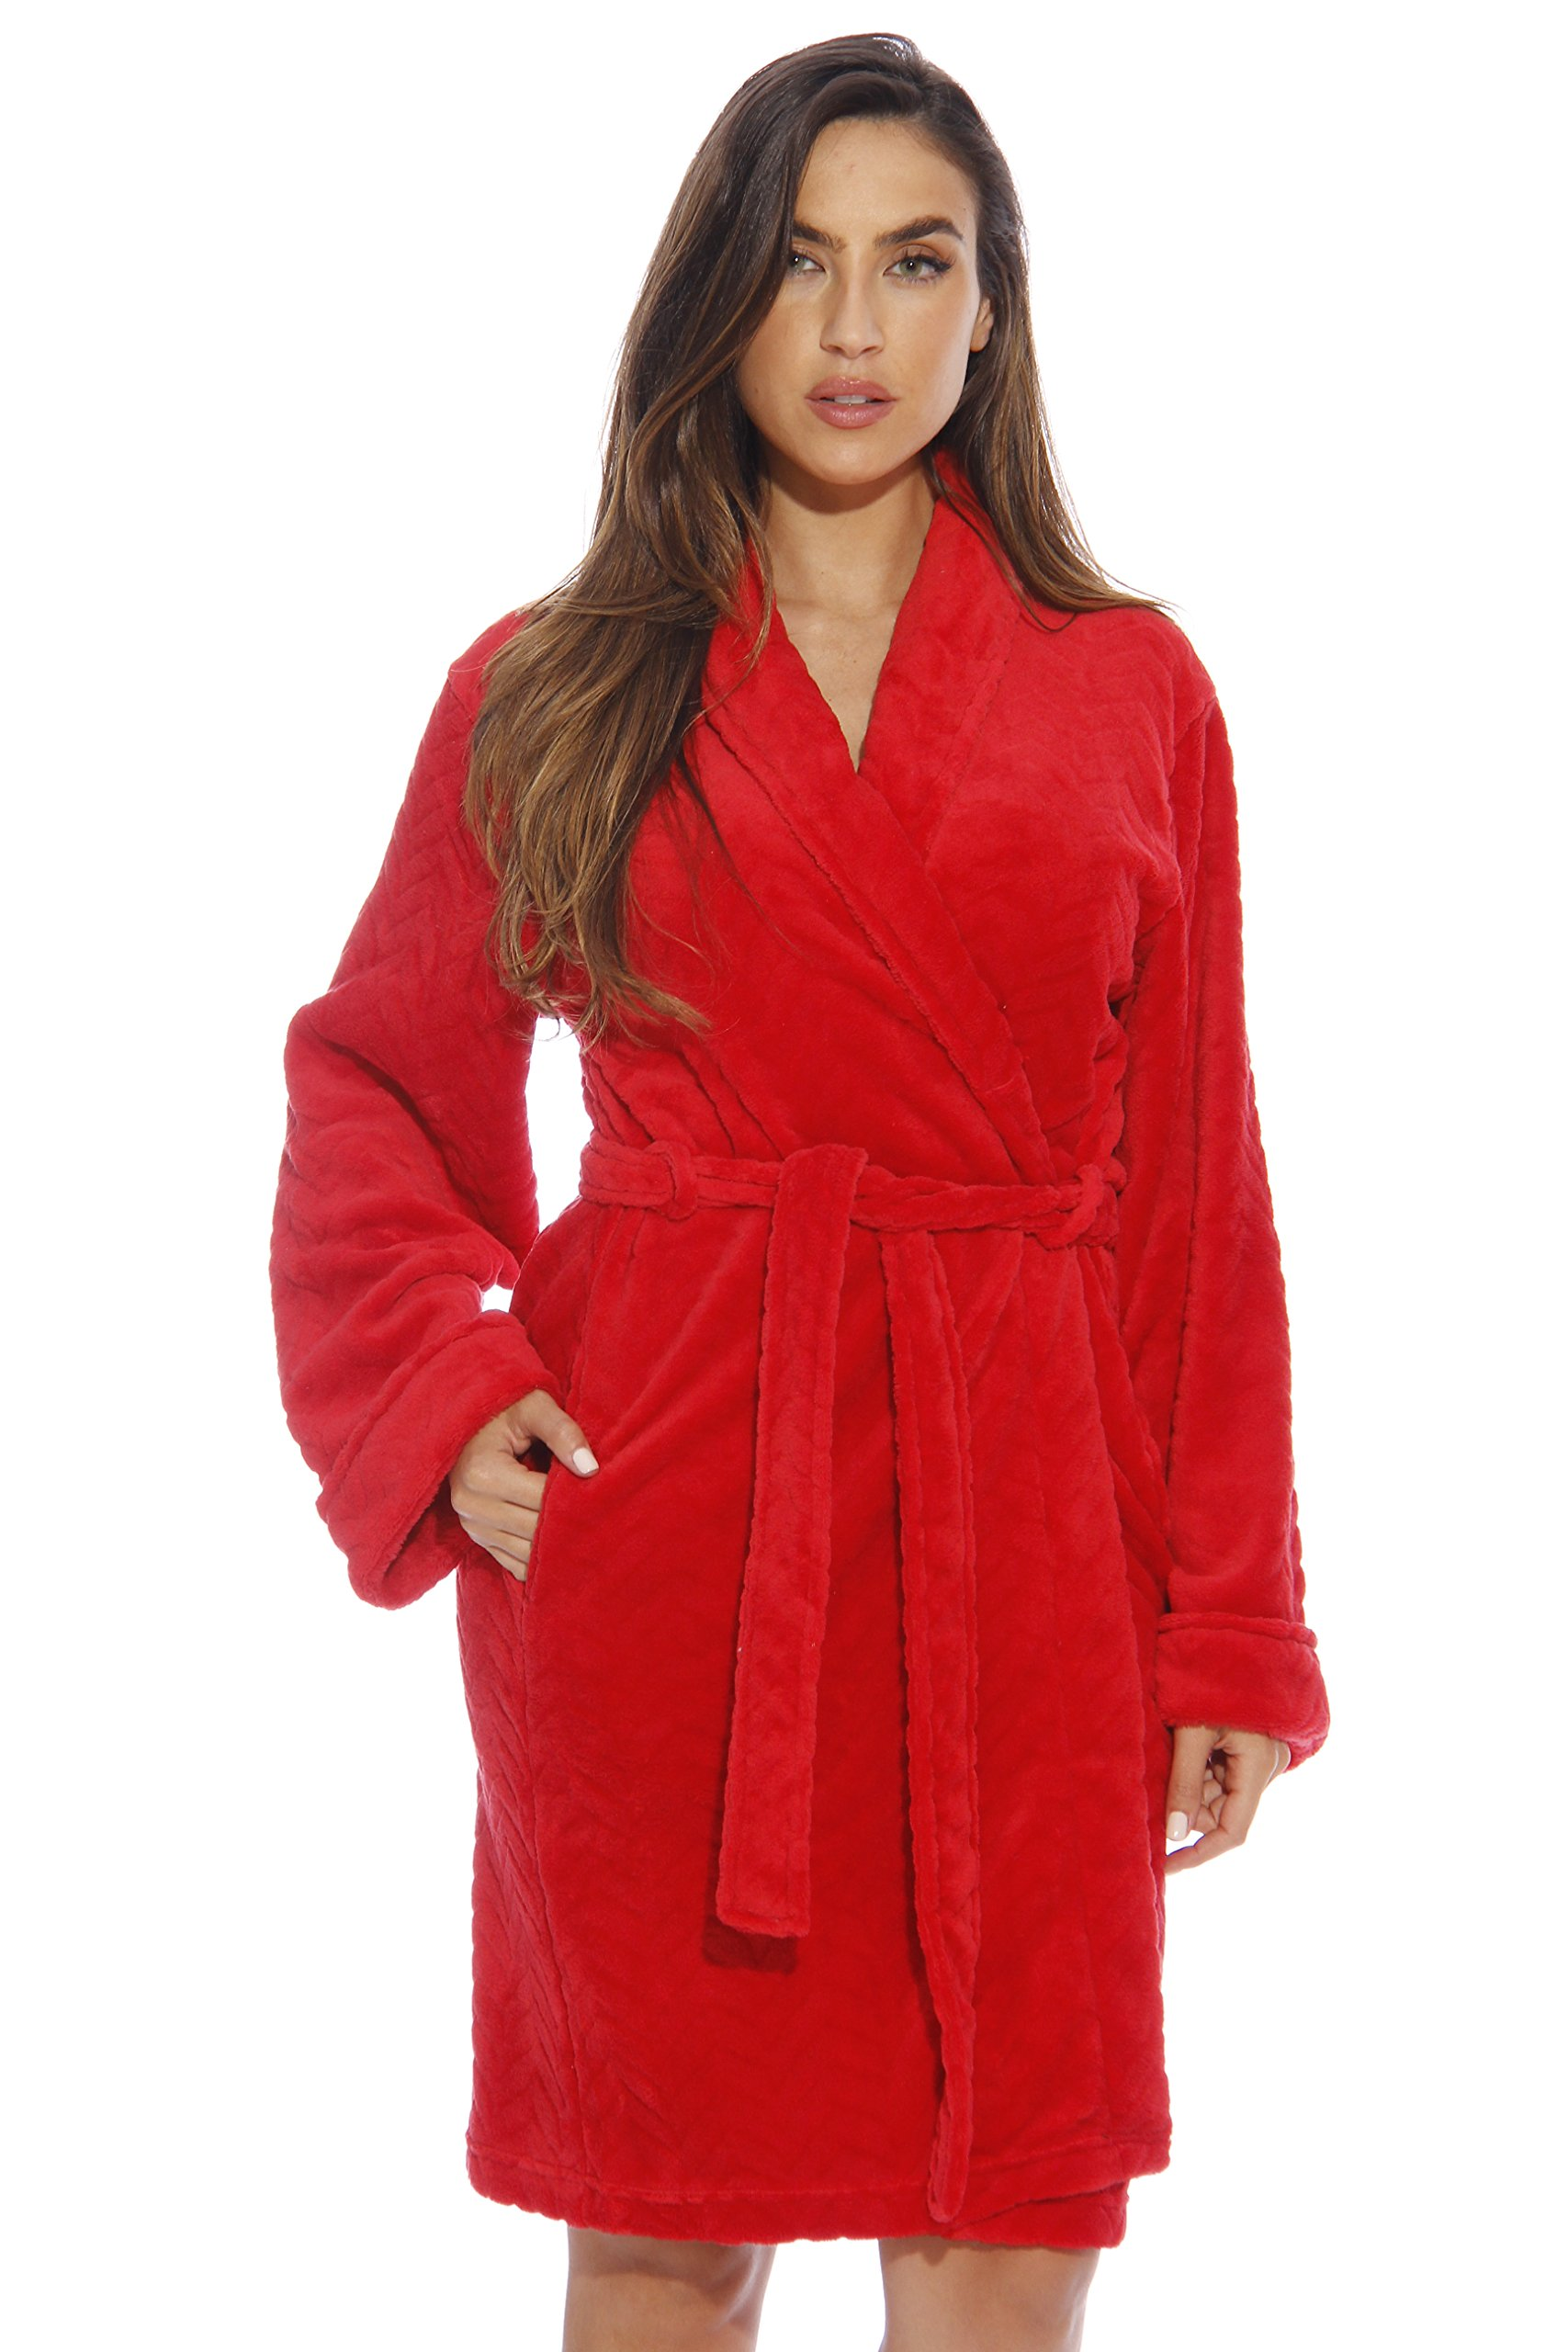 6312-Red-S Just Love Kimono Robe / Bath Robes for Women